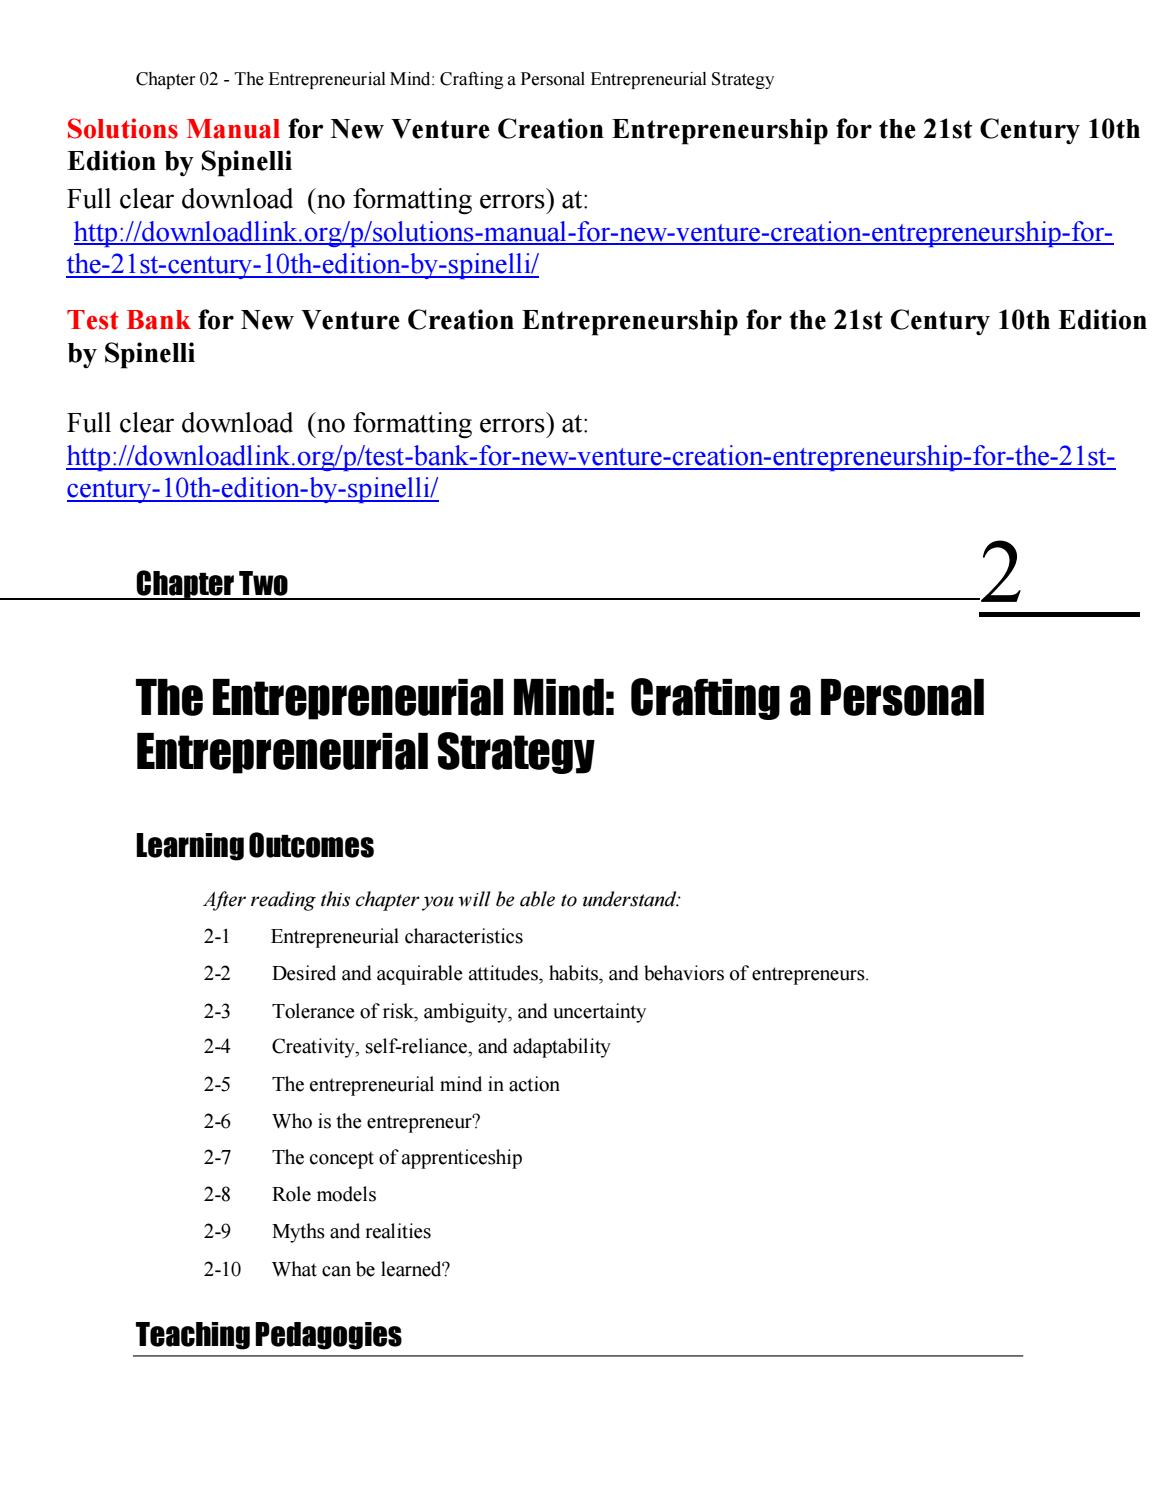 Solutions Manual for New Venture Creation Entrepreneurship for the 21st  Century 10th Edition by Spin by Crawford887 - issuu